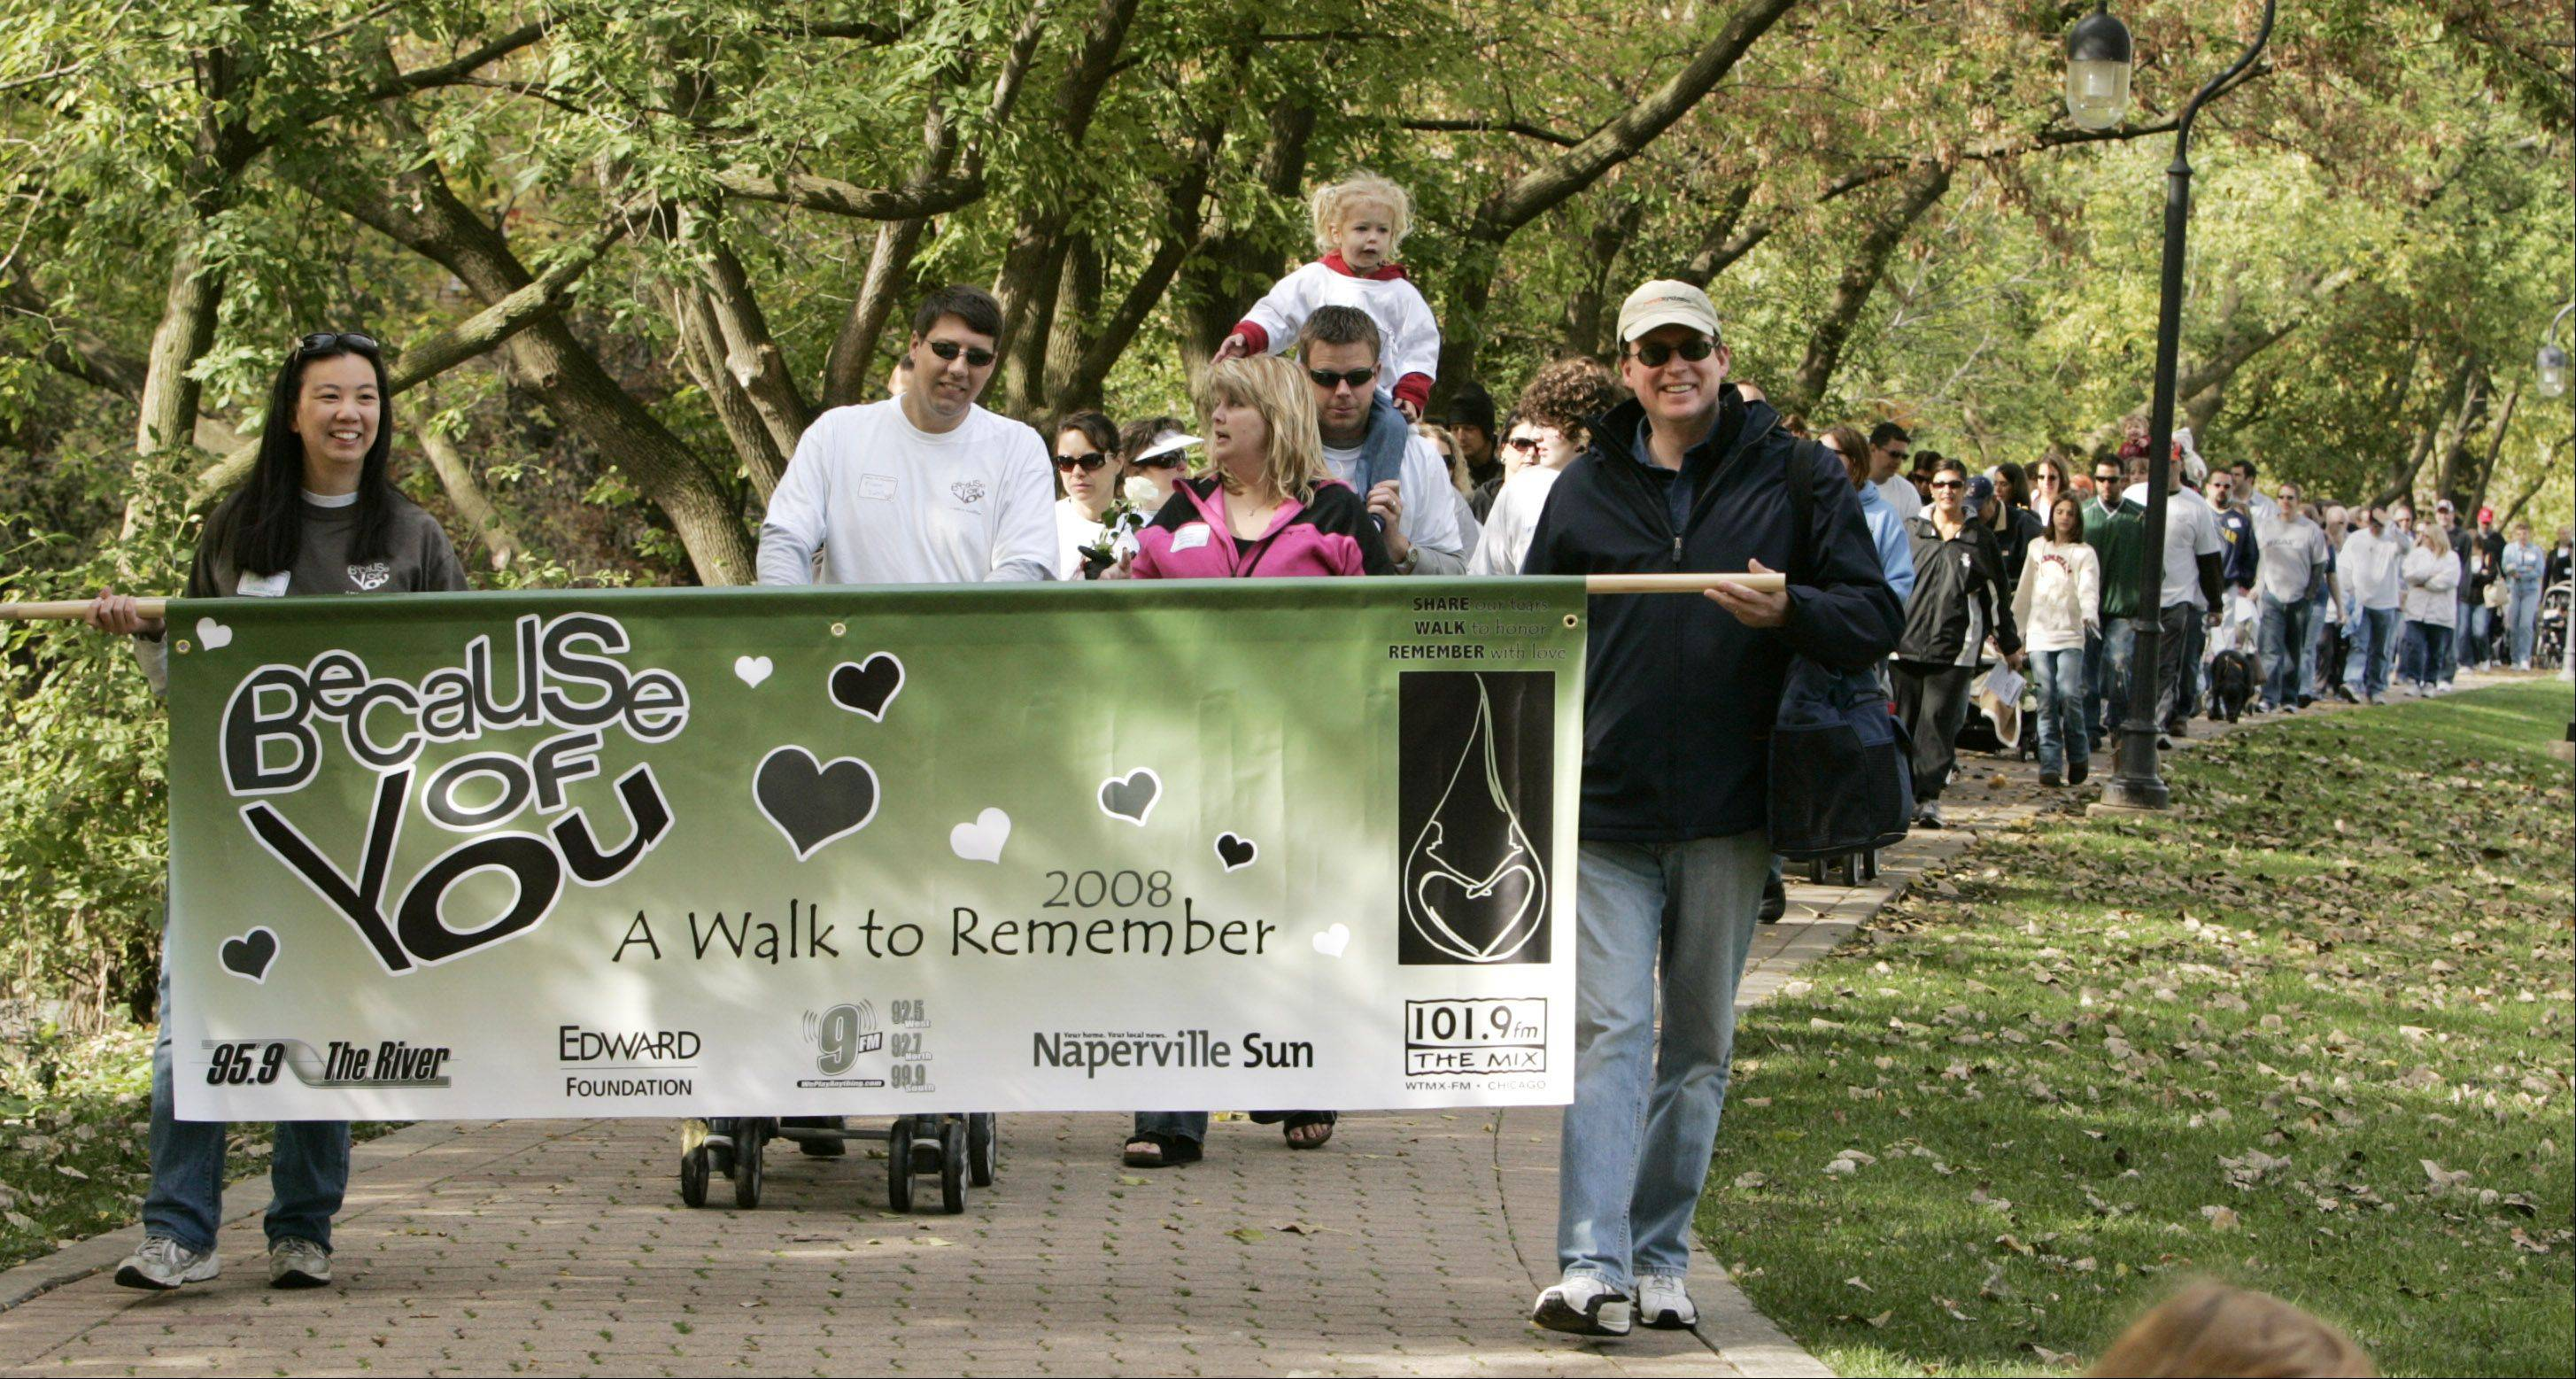 A Walk to Remember, founded in 2005, raises money for SHARE grief support groups and programs at Edward Hospital as well as the memorial Wings of Hope Angel Garden on the hospital campus.